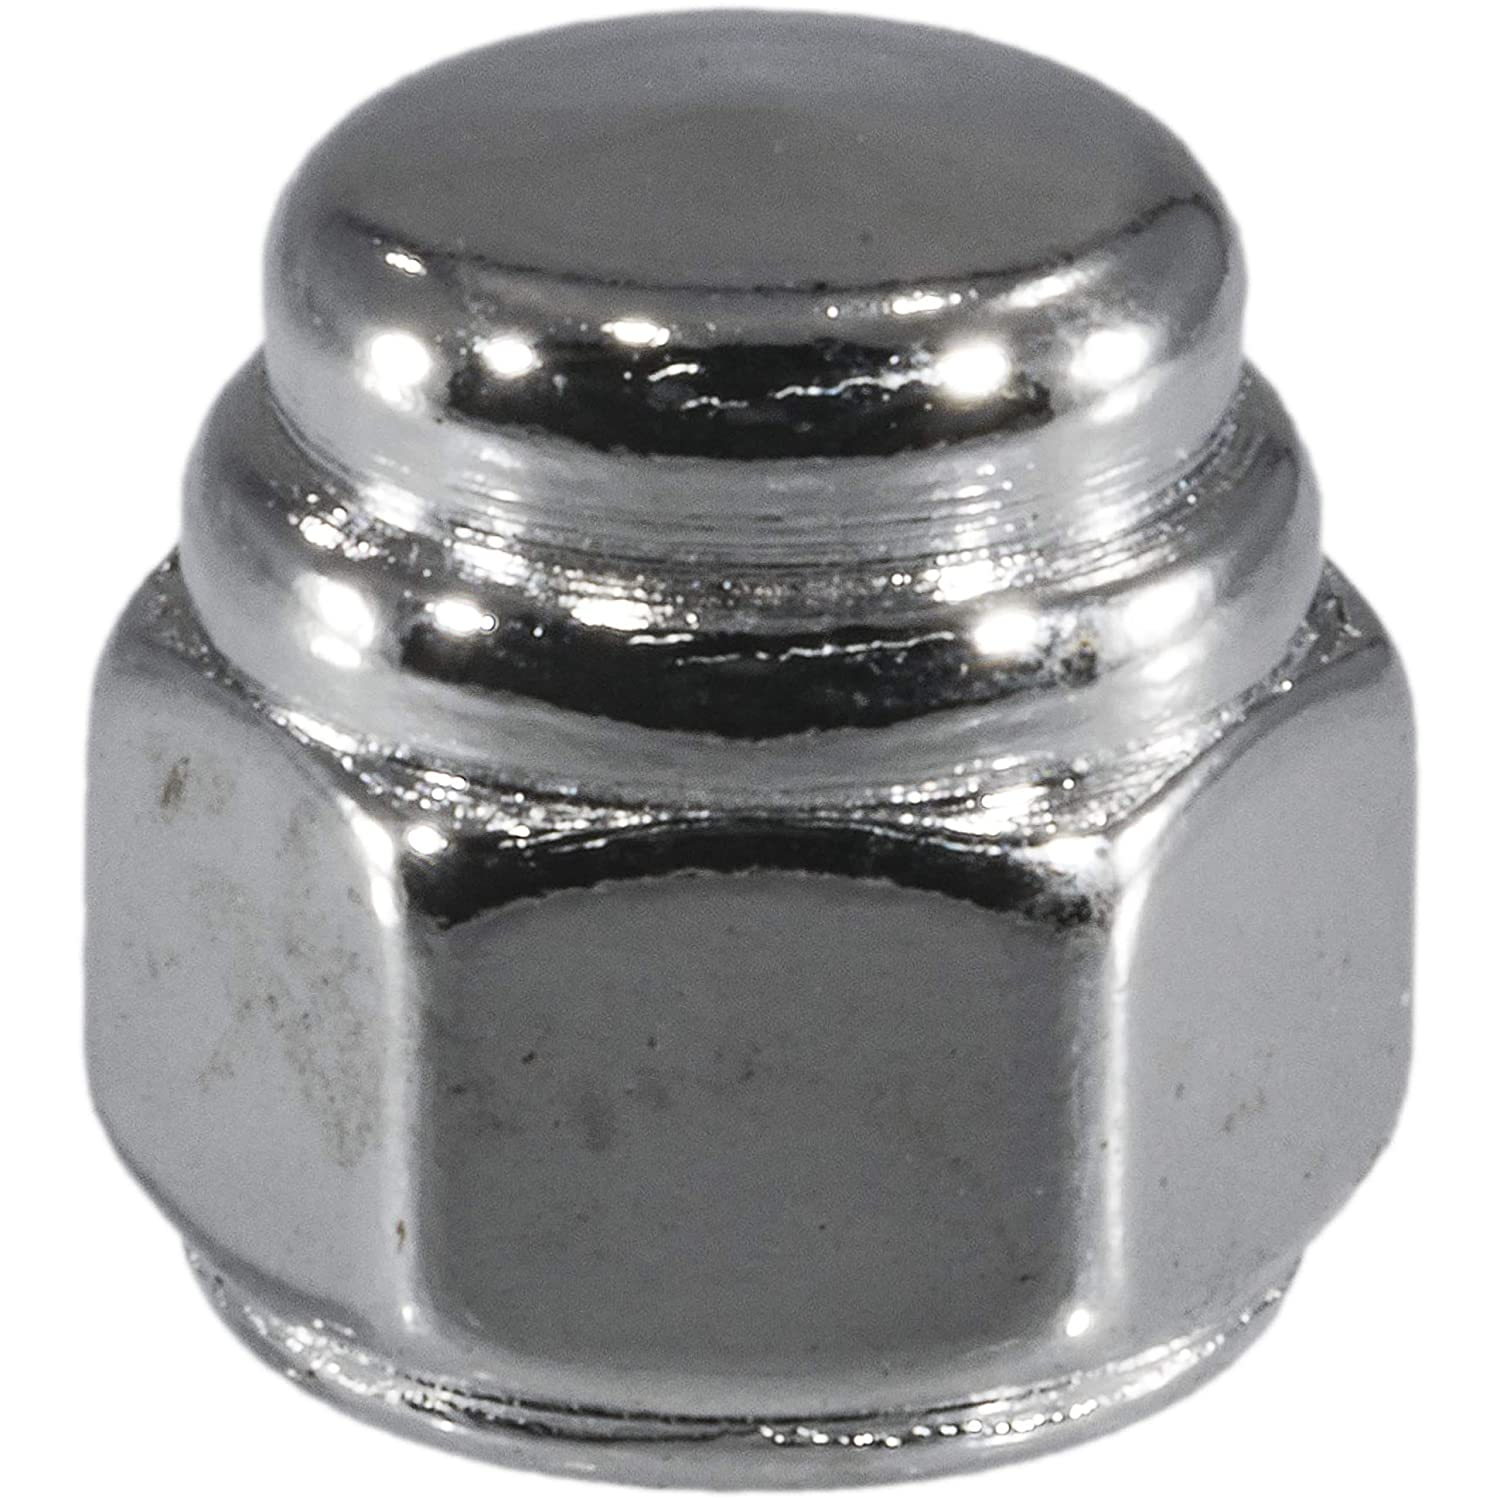 Piece-15 Midwest Fastener Corp 1//4-20 Hard-to-Find Fastener 014973478001 Flat Acorn Nut Chrome